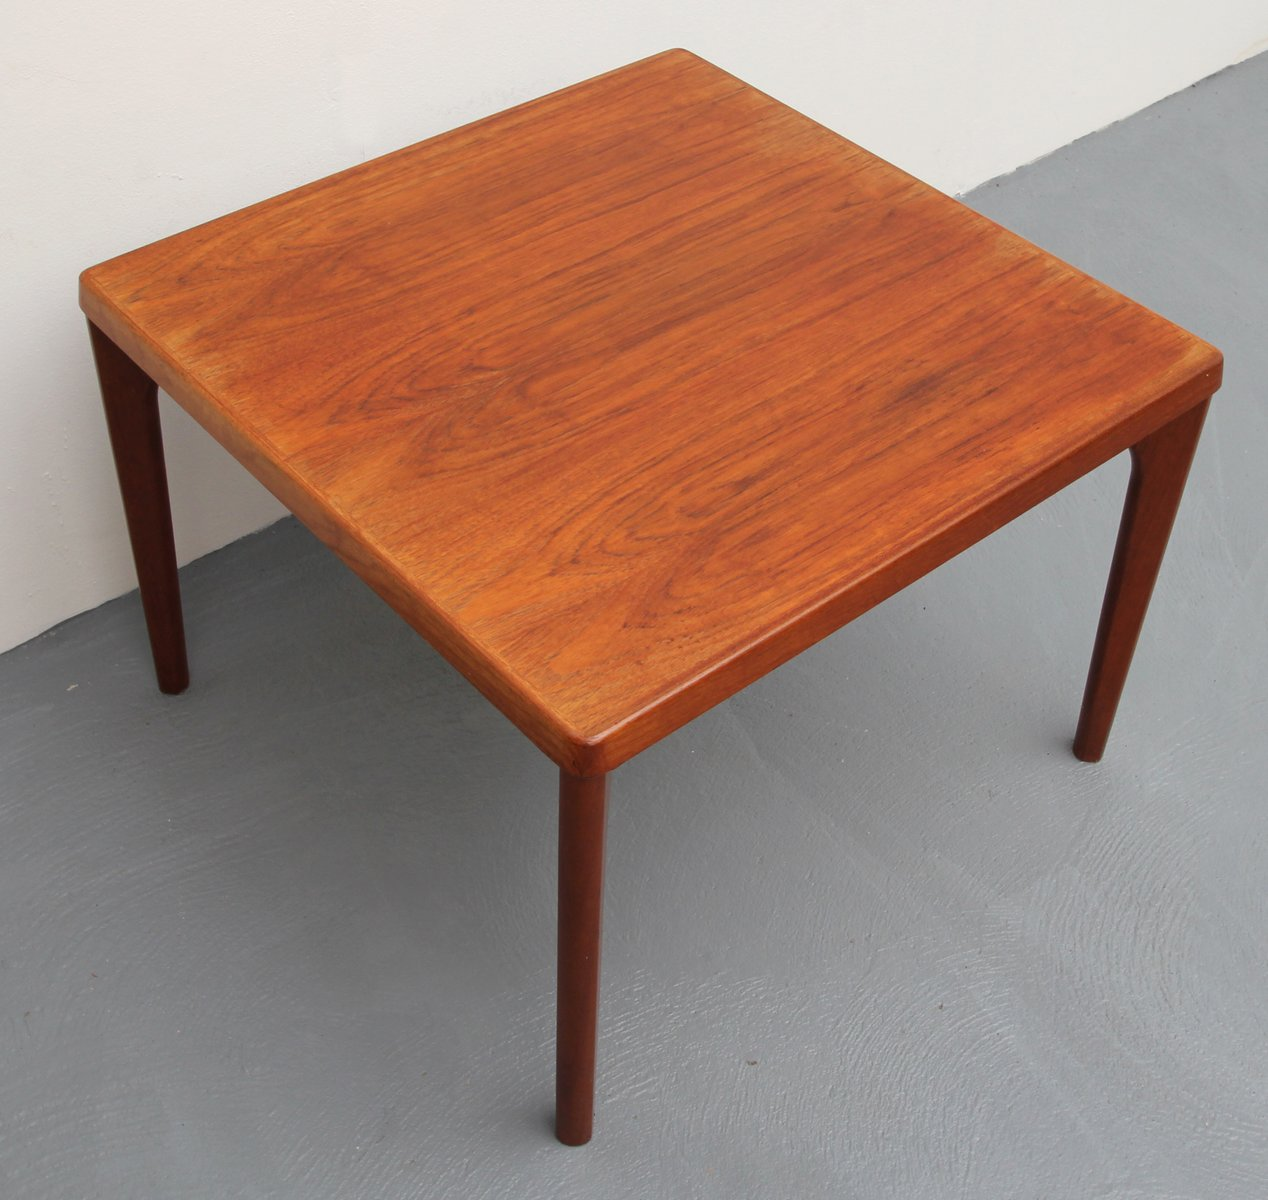 Vintage Teak Coffee Table By Henning Kjaernulf For Vejle Mobelfabrik For Sale At Pamono